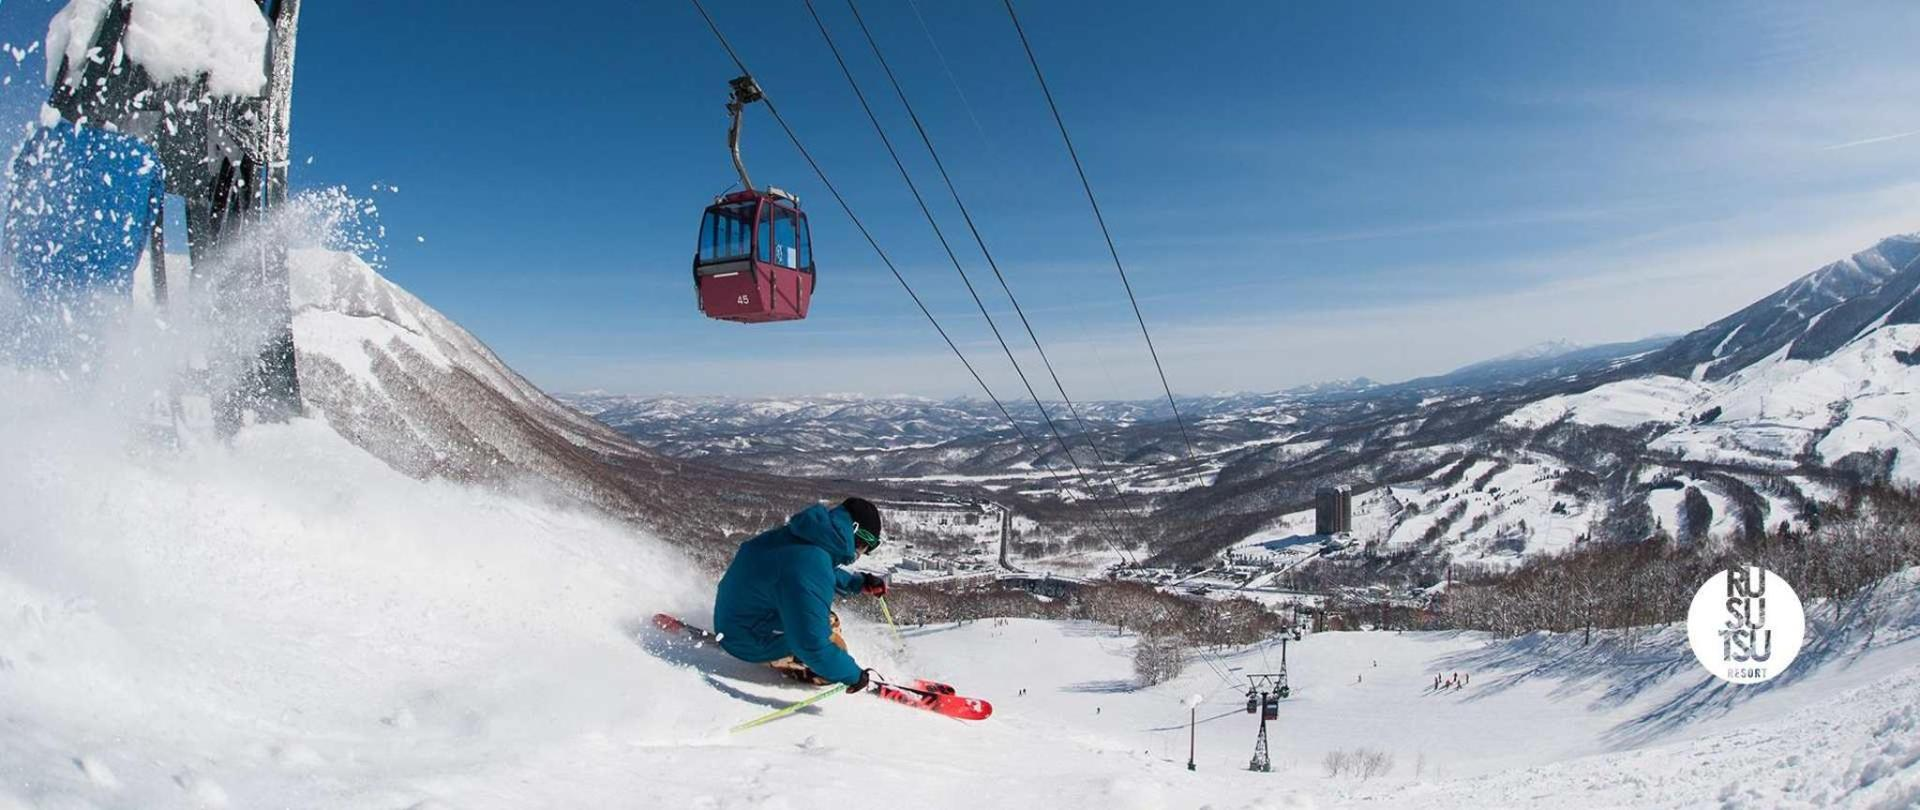 7-winter_banner-20171004-chairlift.jpg.1920x810_default.jpeg